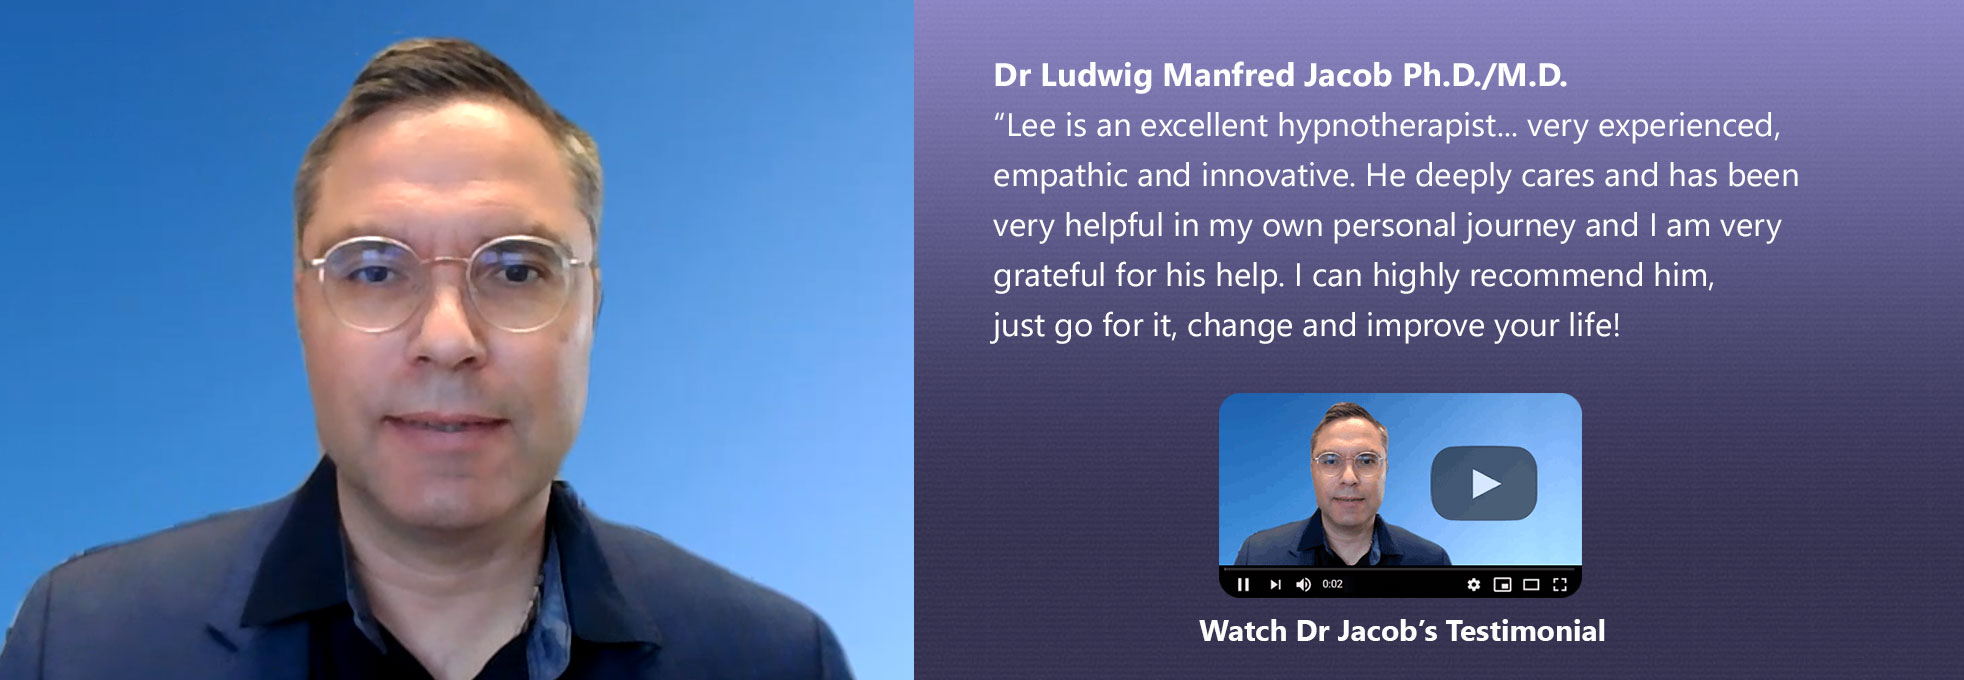 Dr Ludwig Manfred Jacob Ph.D./M.D. Review